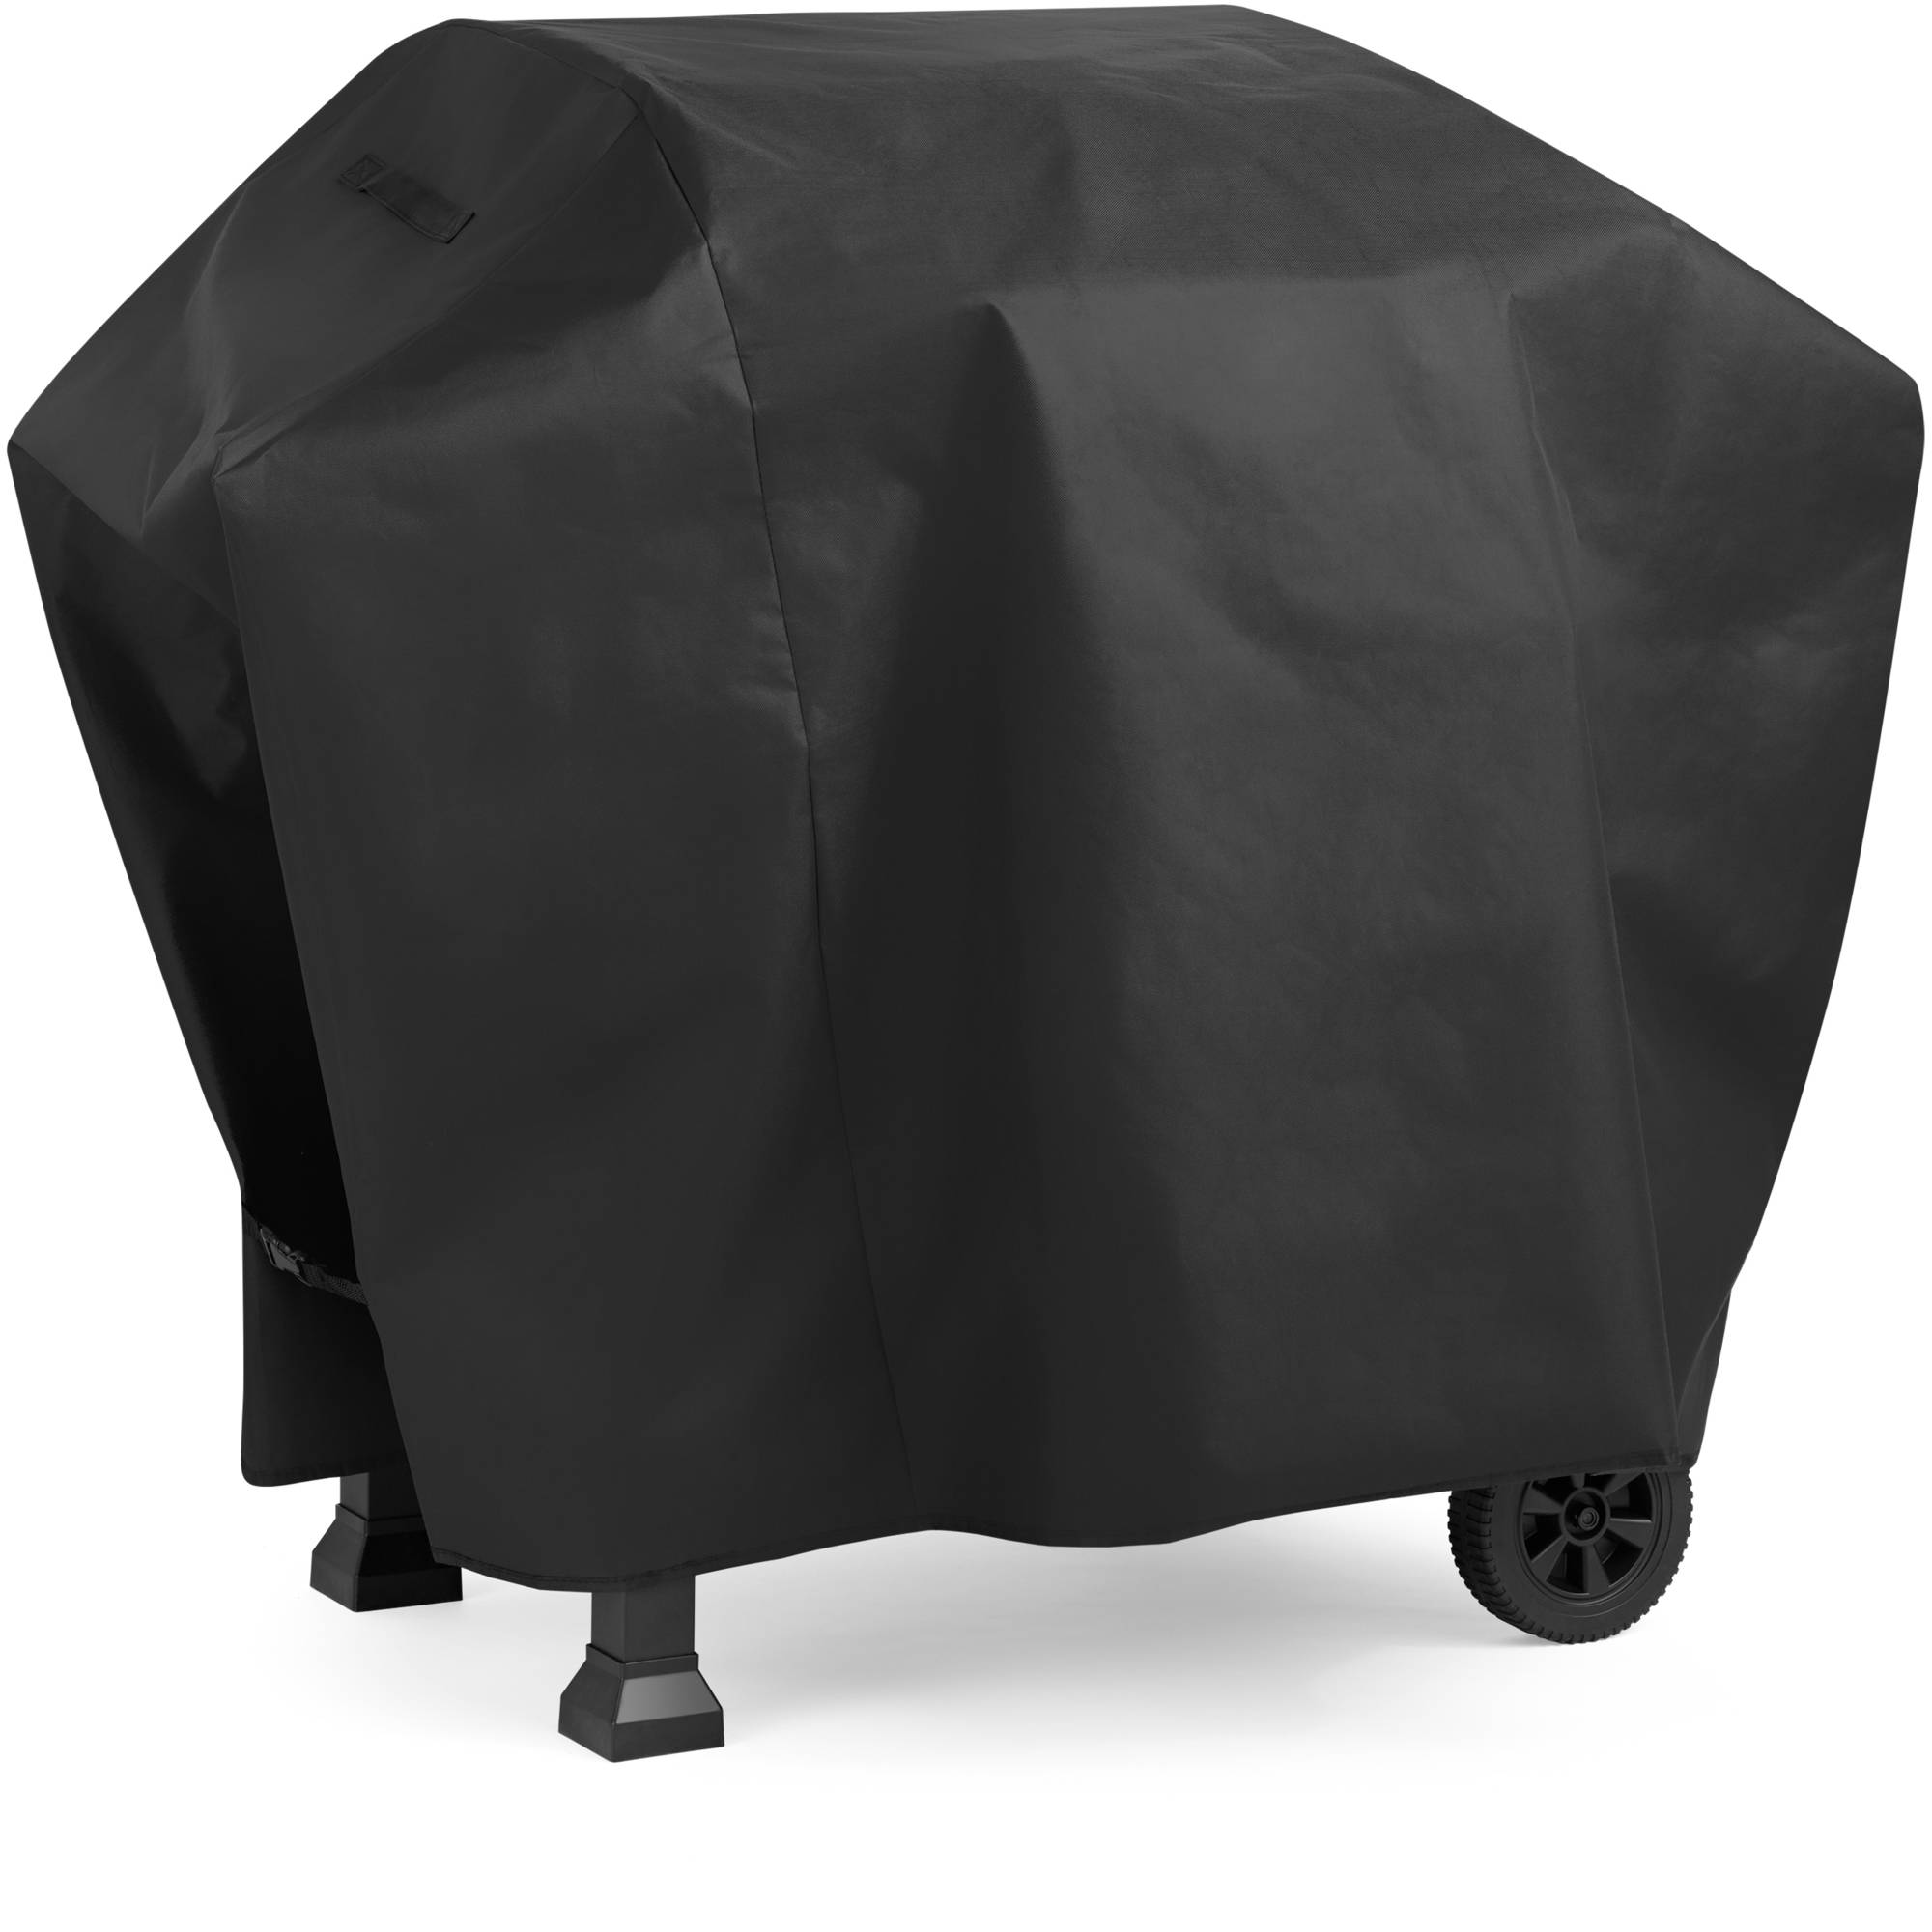 expert grill heavy duty 55inch grill cover